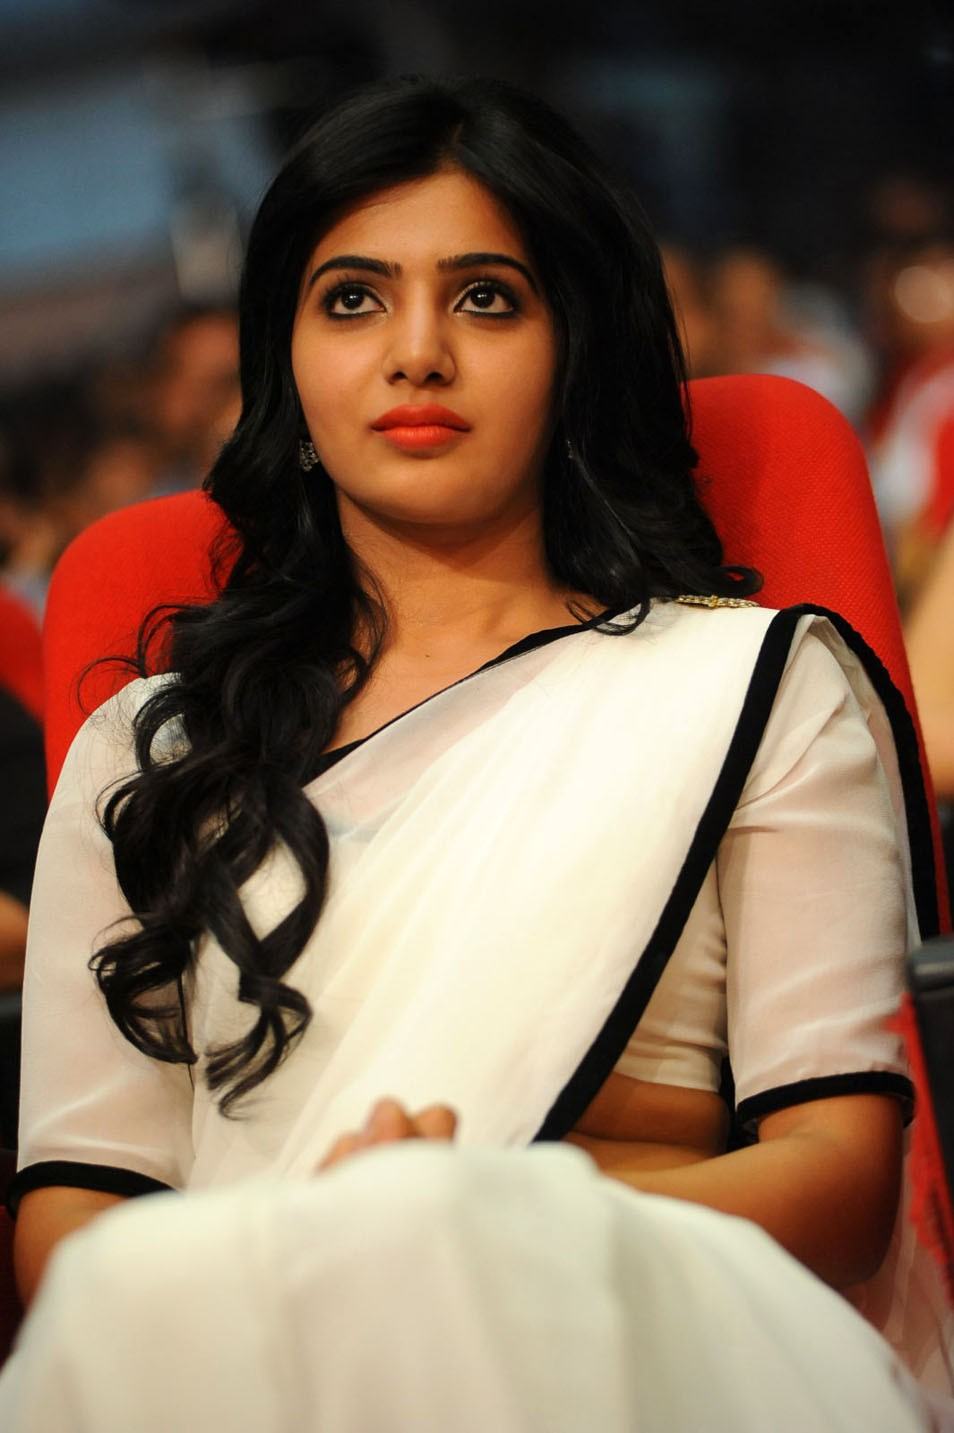 Cute samantha from svsc platinum disc launch